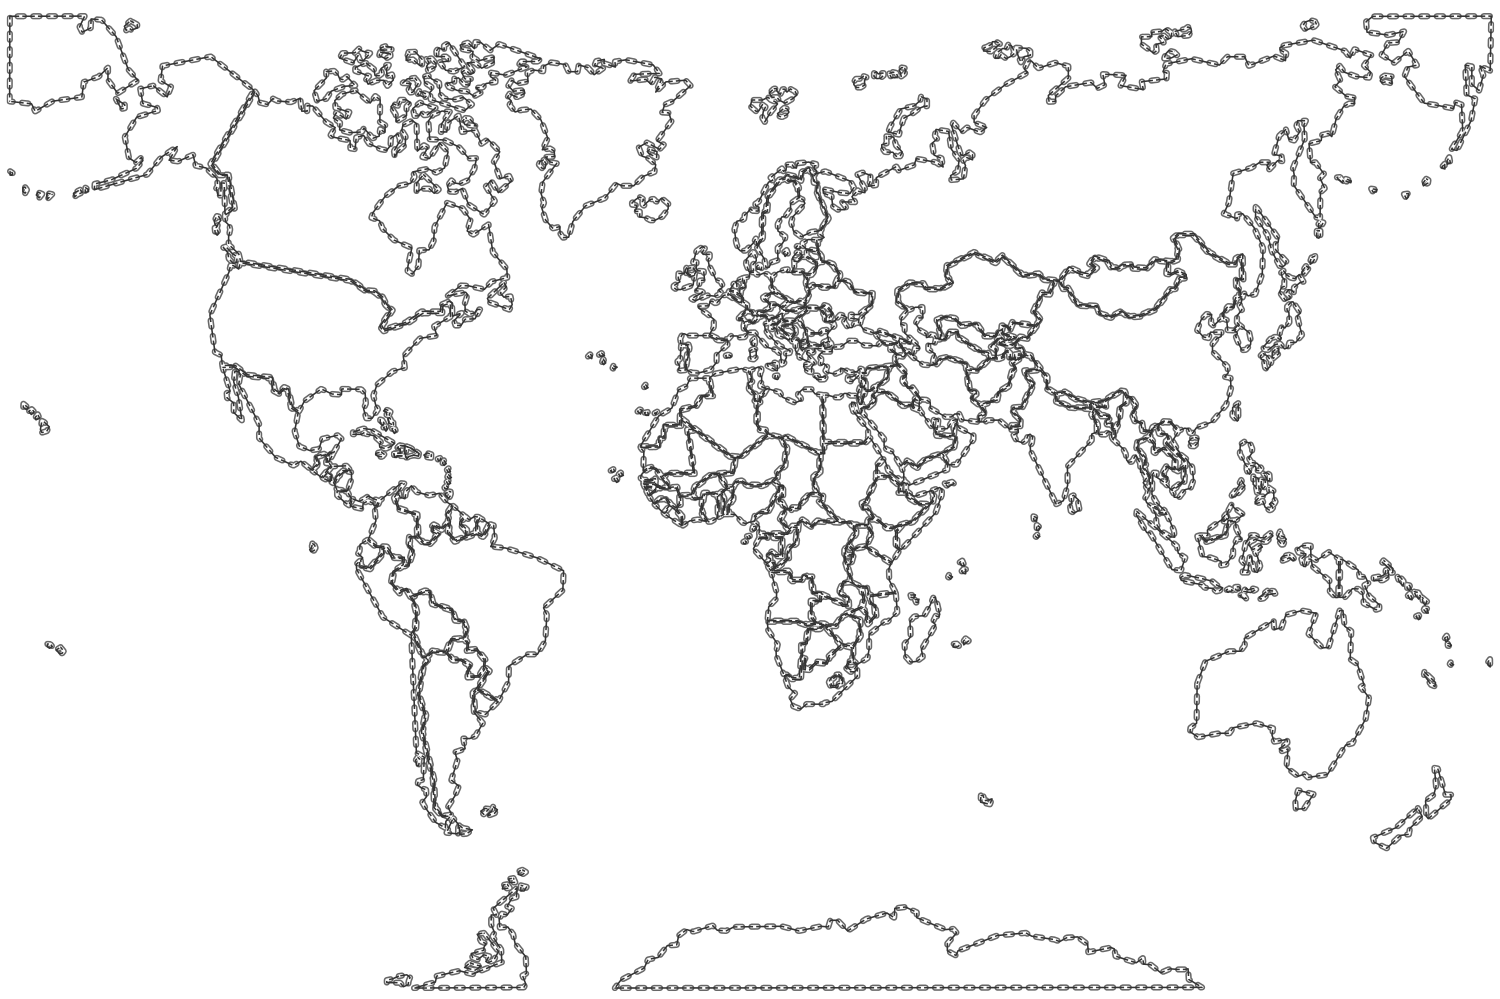 coloring map of the world world map coloring pages coloring pages to download and coloring map of the world